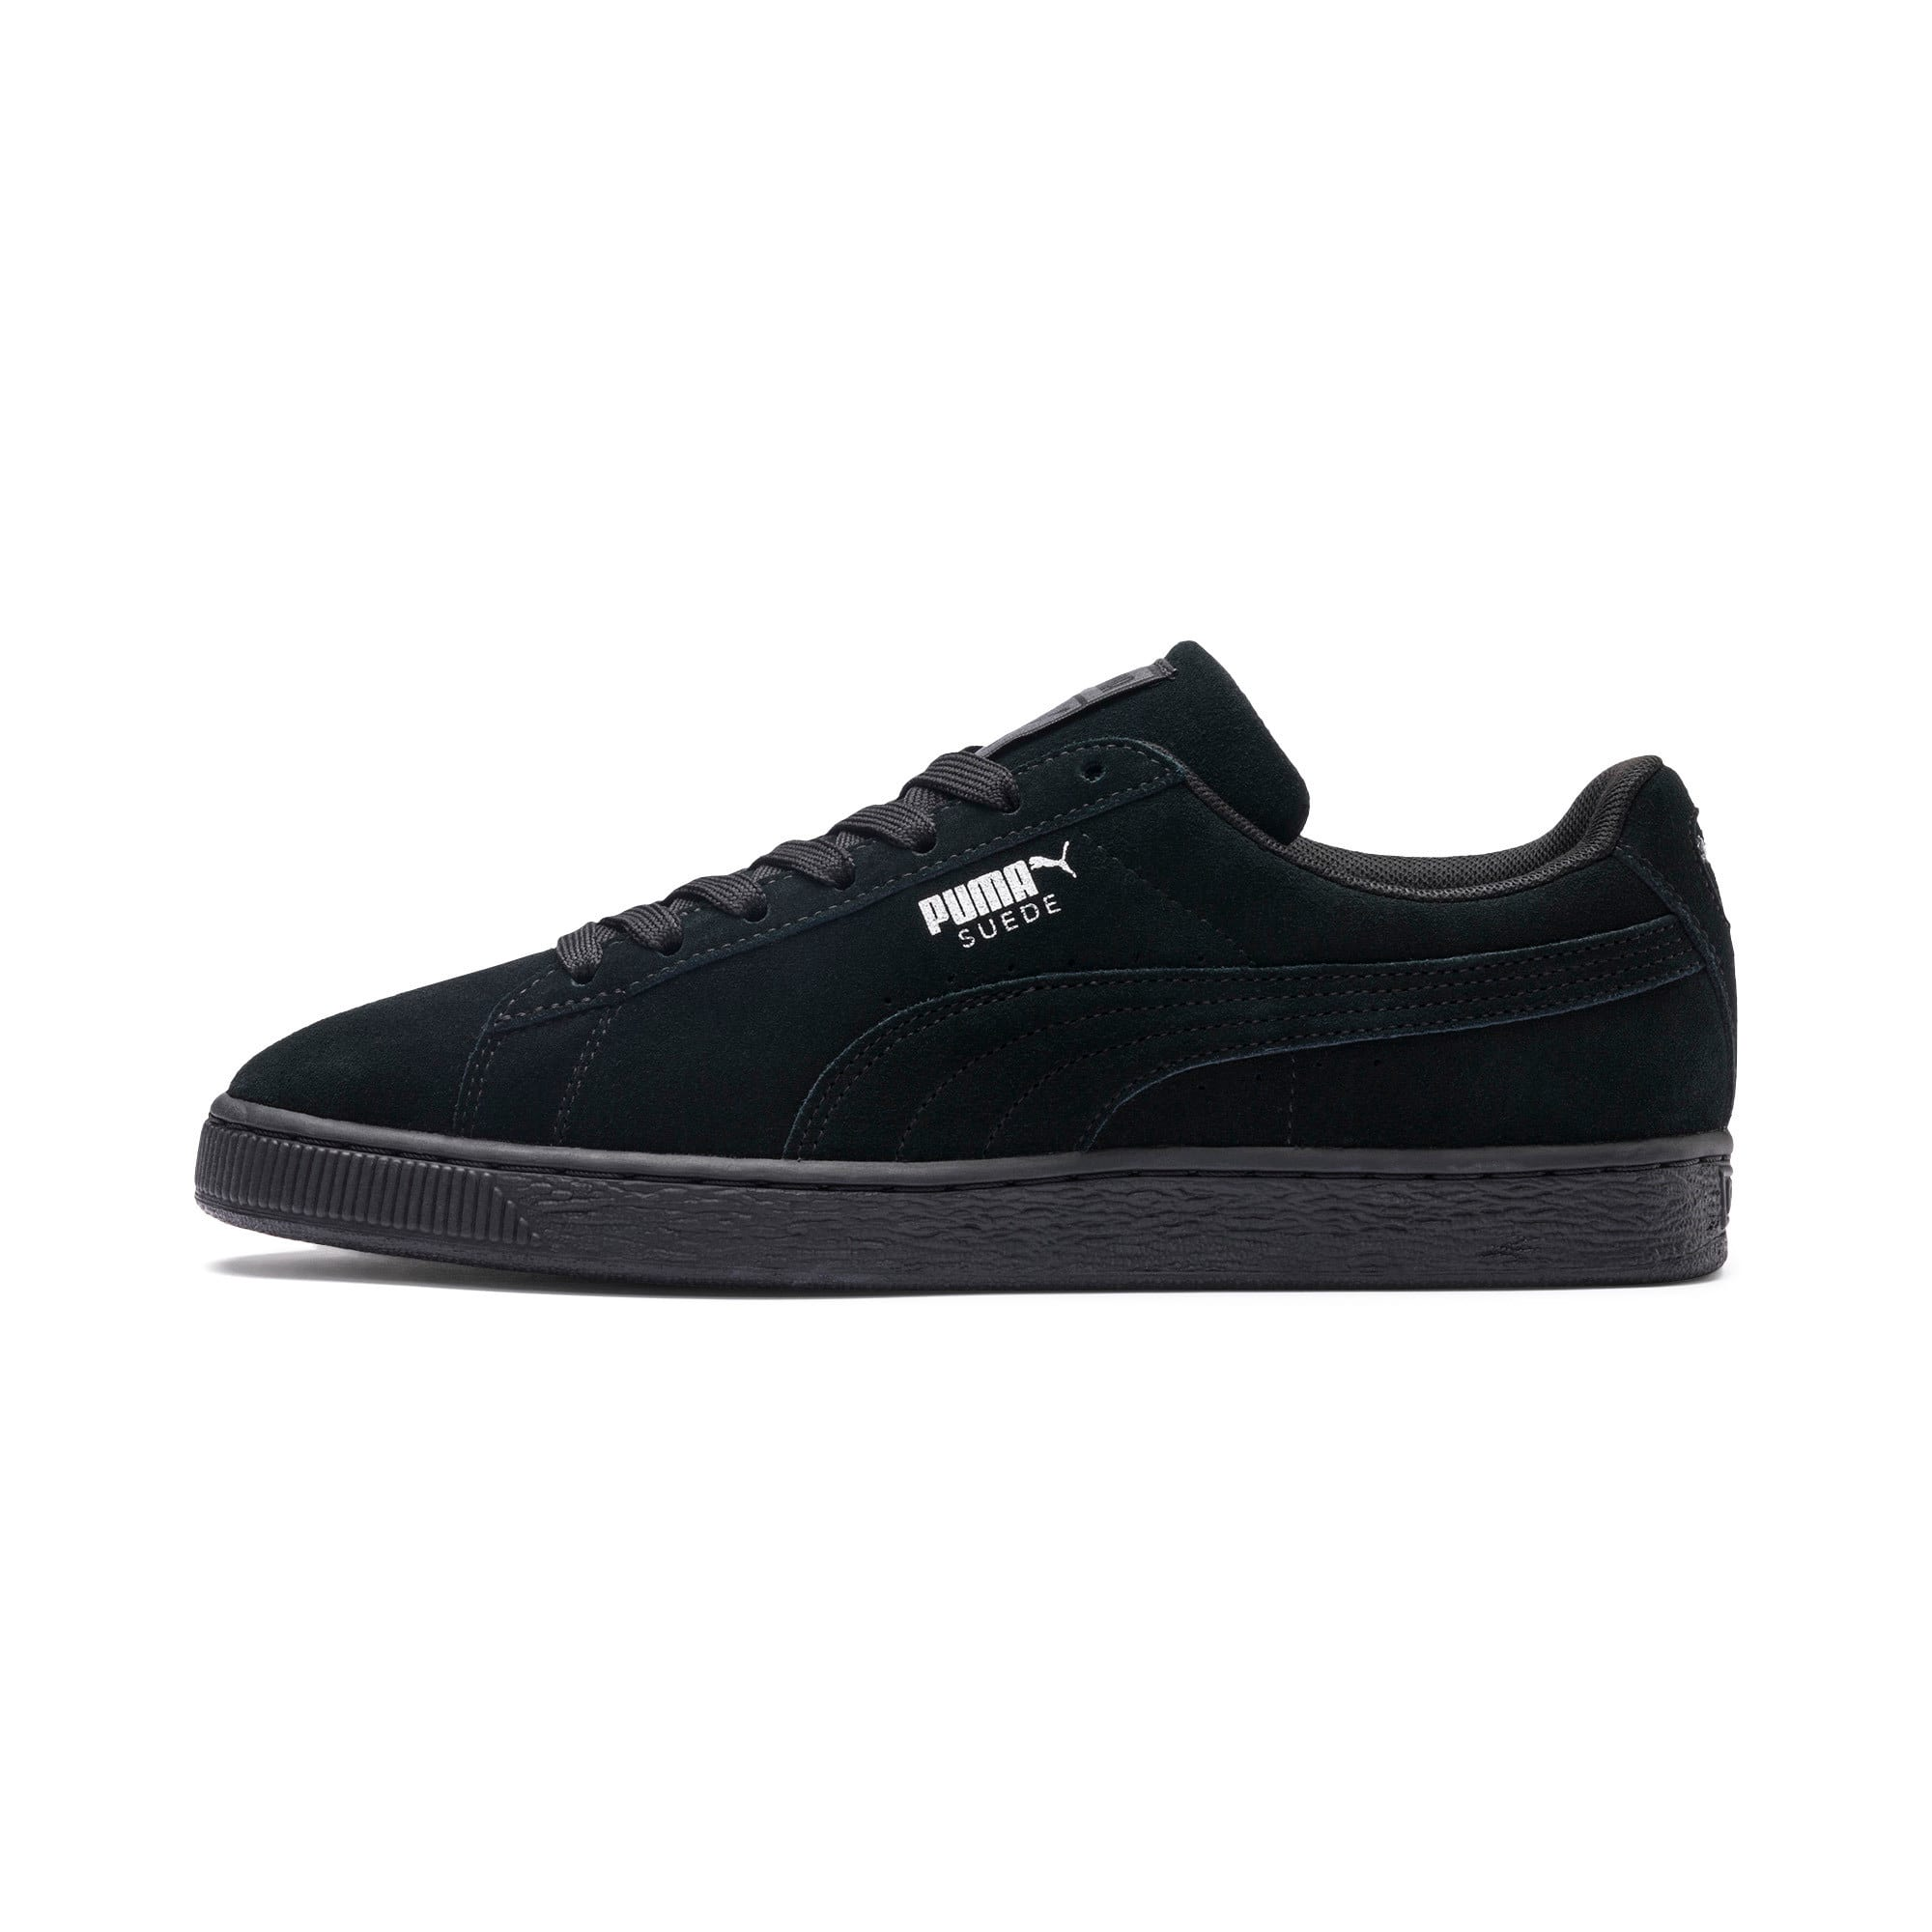 Suede Classic+ Men's Trainers, black-dark shadow, large